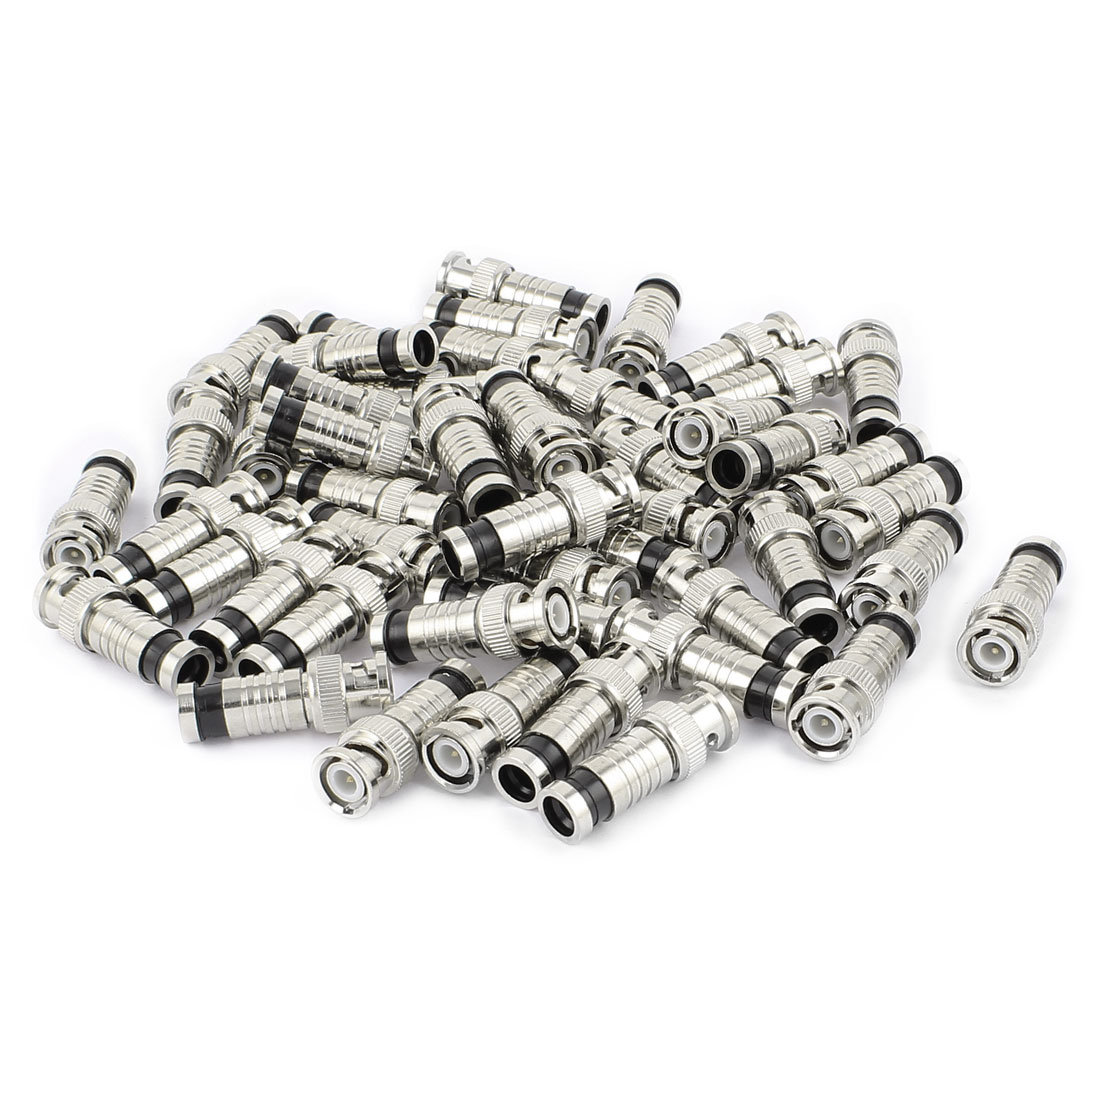 50 Pcs BNC Male Compression Connector Adapter RG6 Security Coaxial Cable CCTV Camera